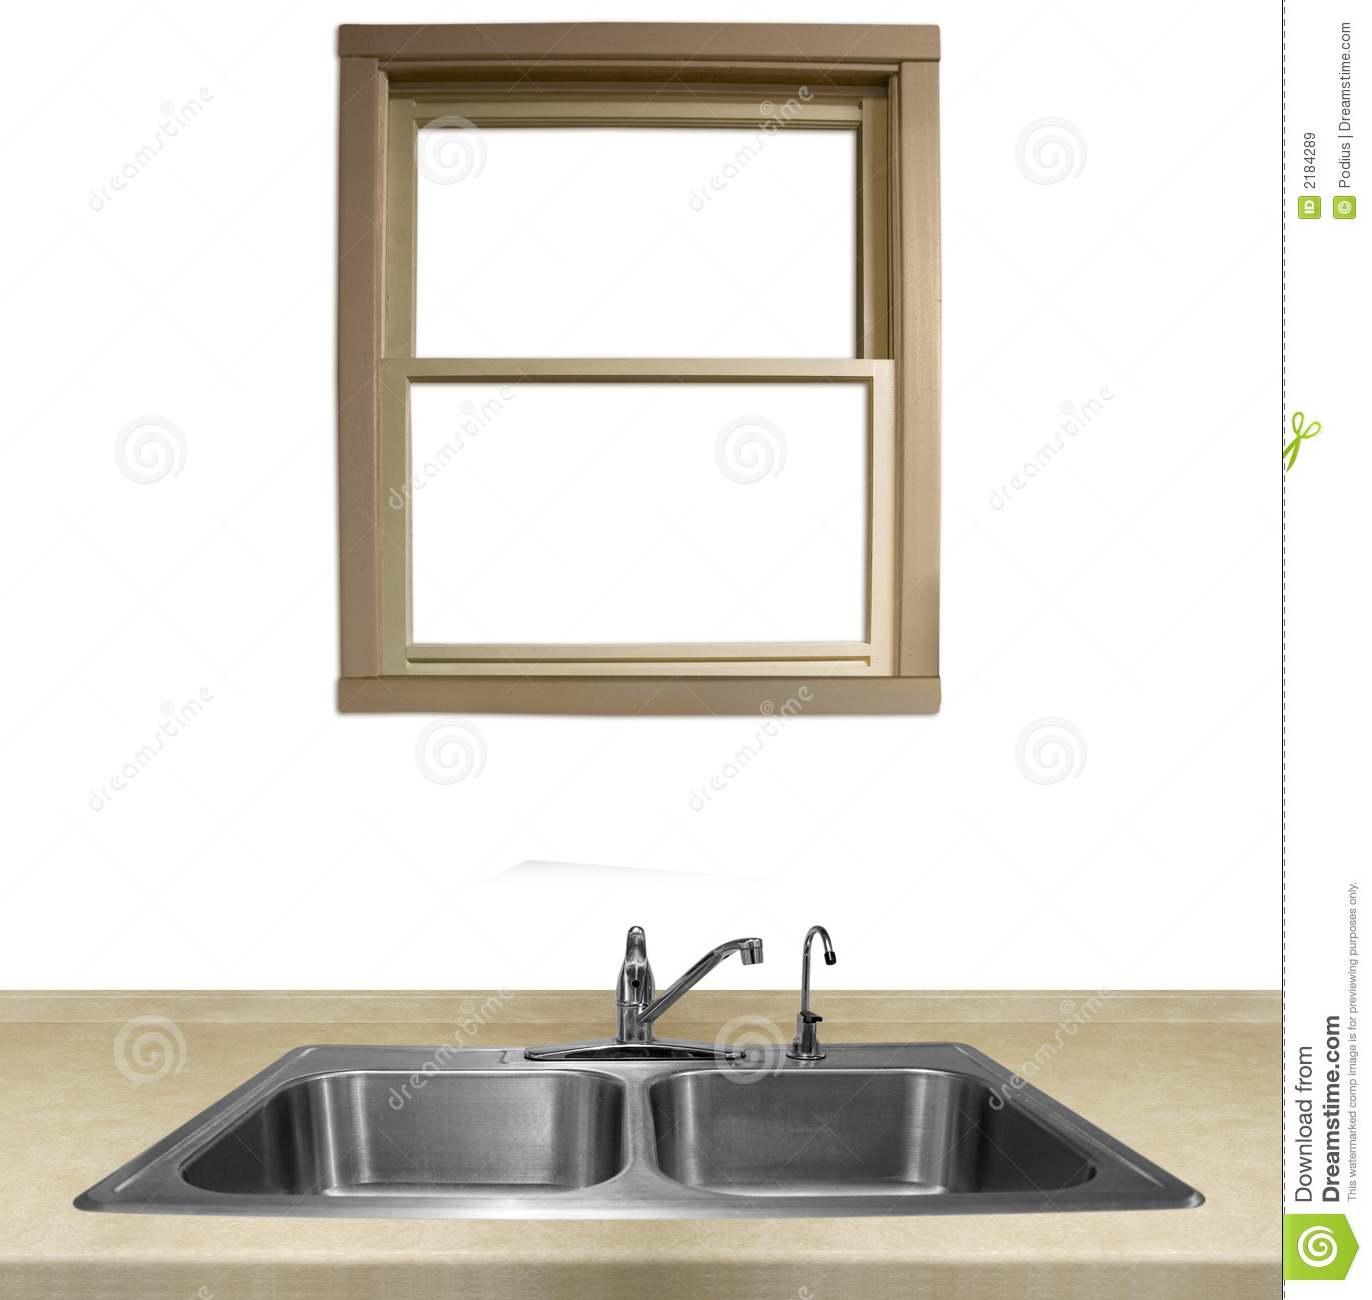 Kitchen Sink And Counter Royalty Free Stock Images